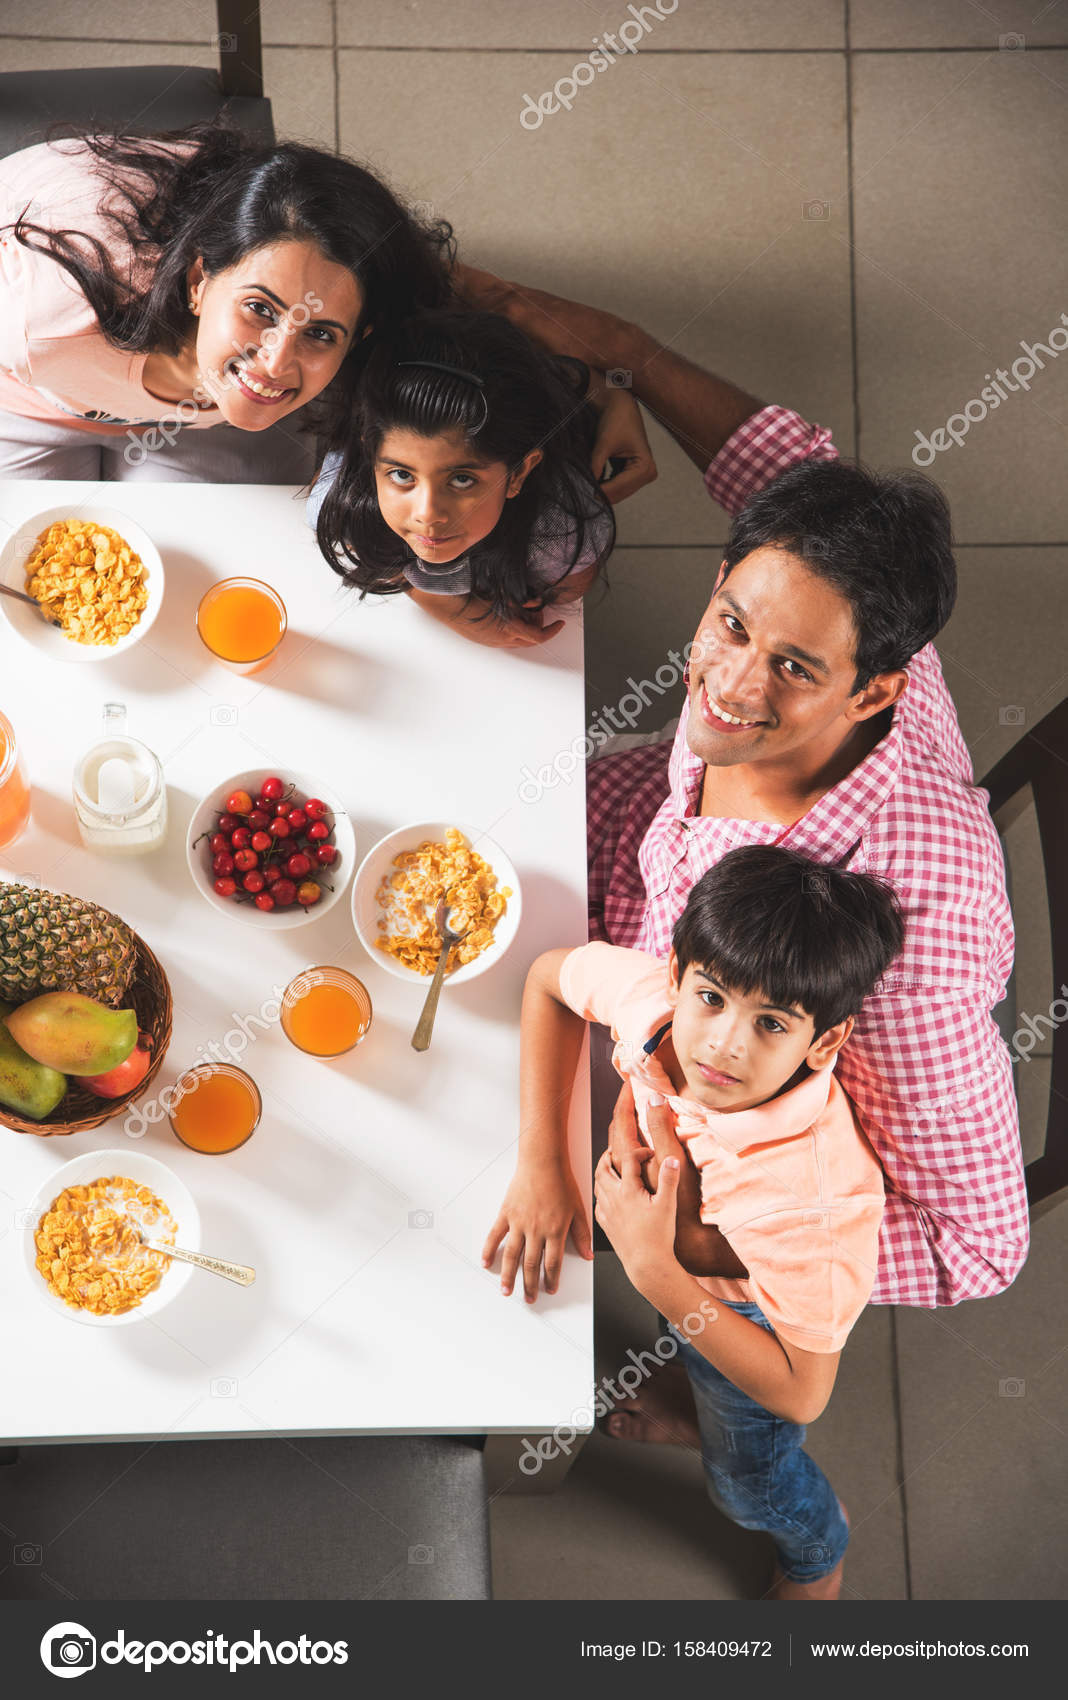 Top View Of Happy Smiling Asian Indian Family Mother Father Son And Daughter Eating Healthy Food Salad At A Dining Table Indians Breakfast